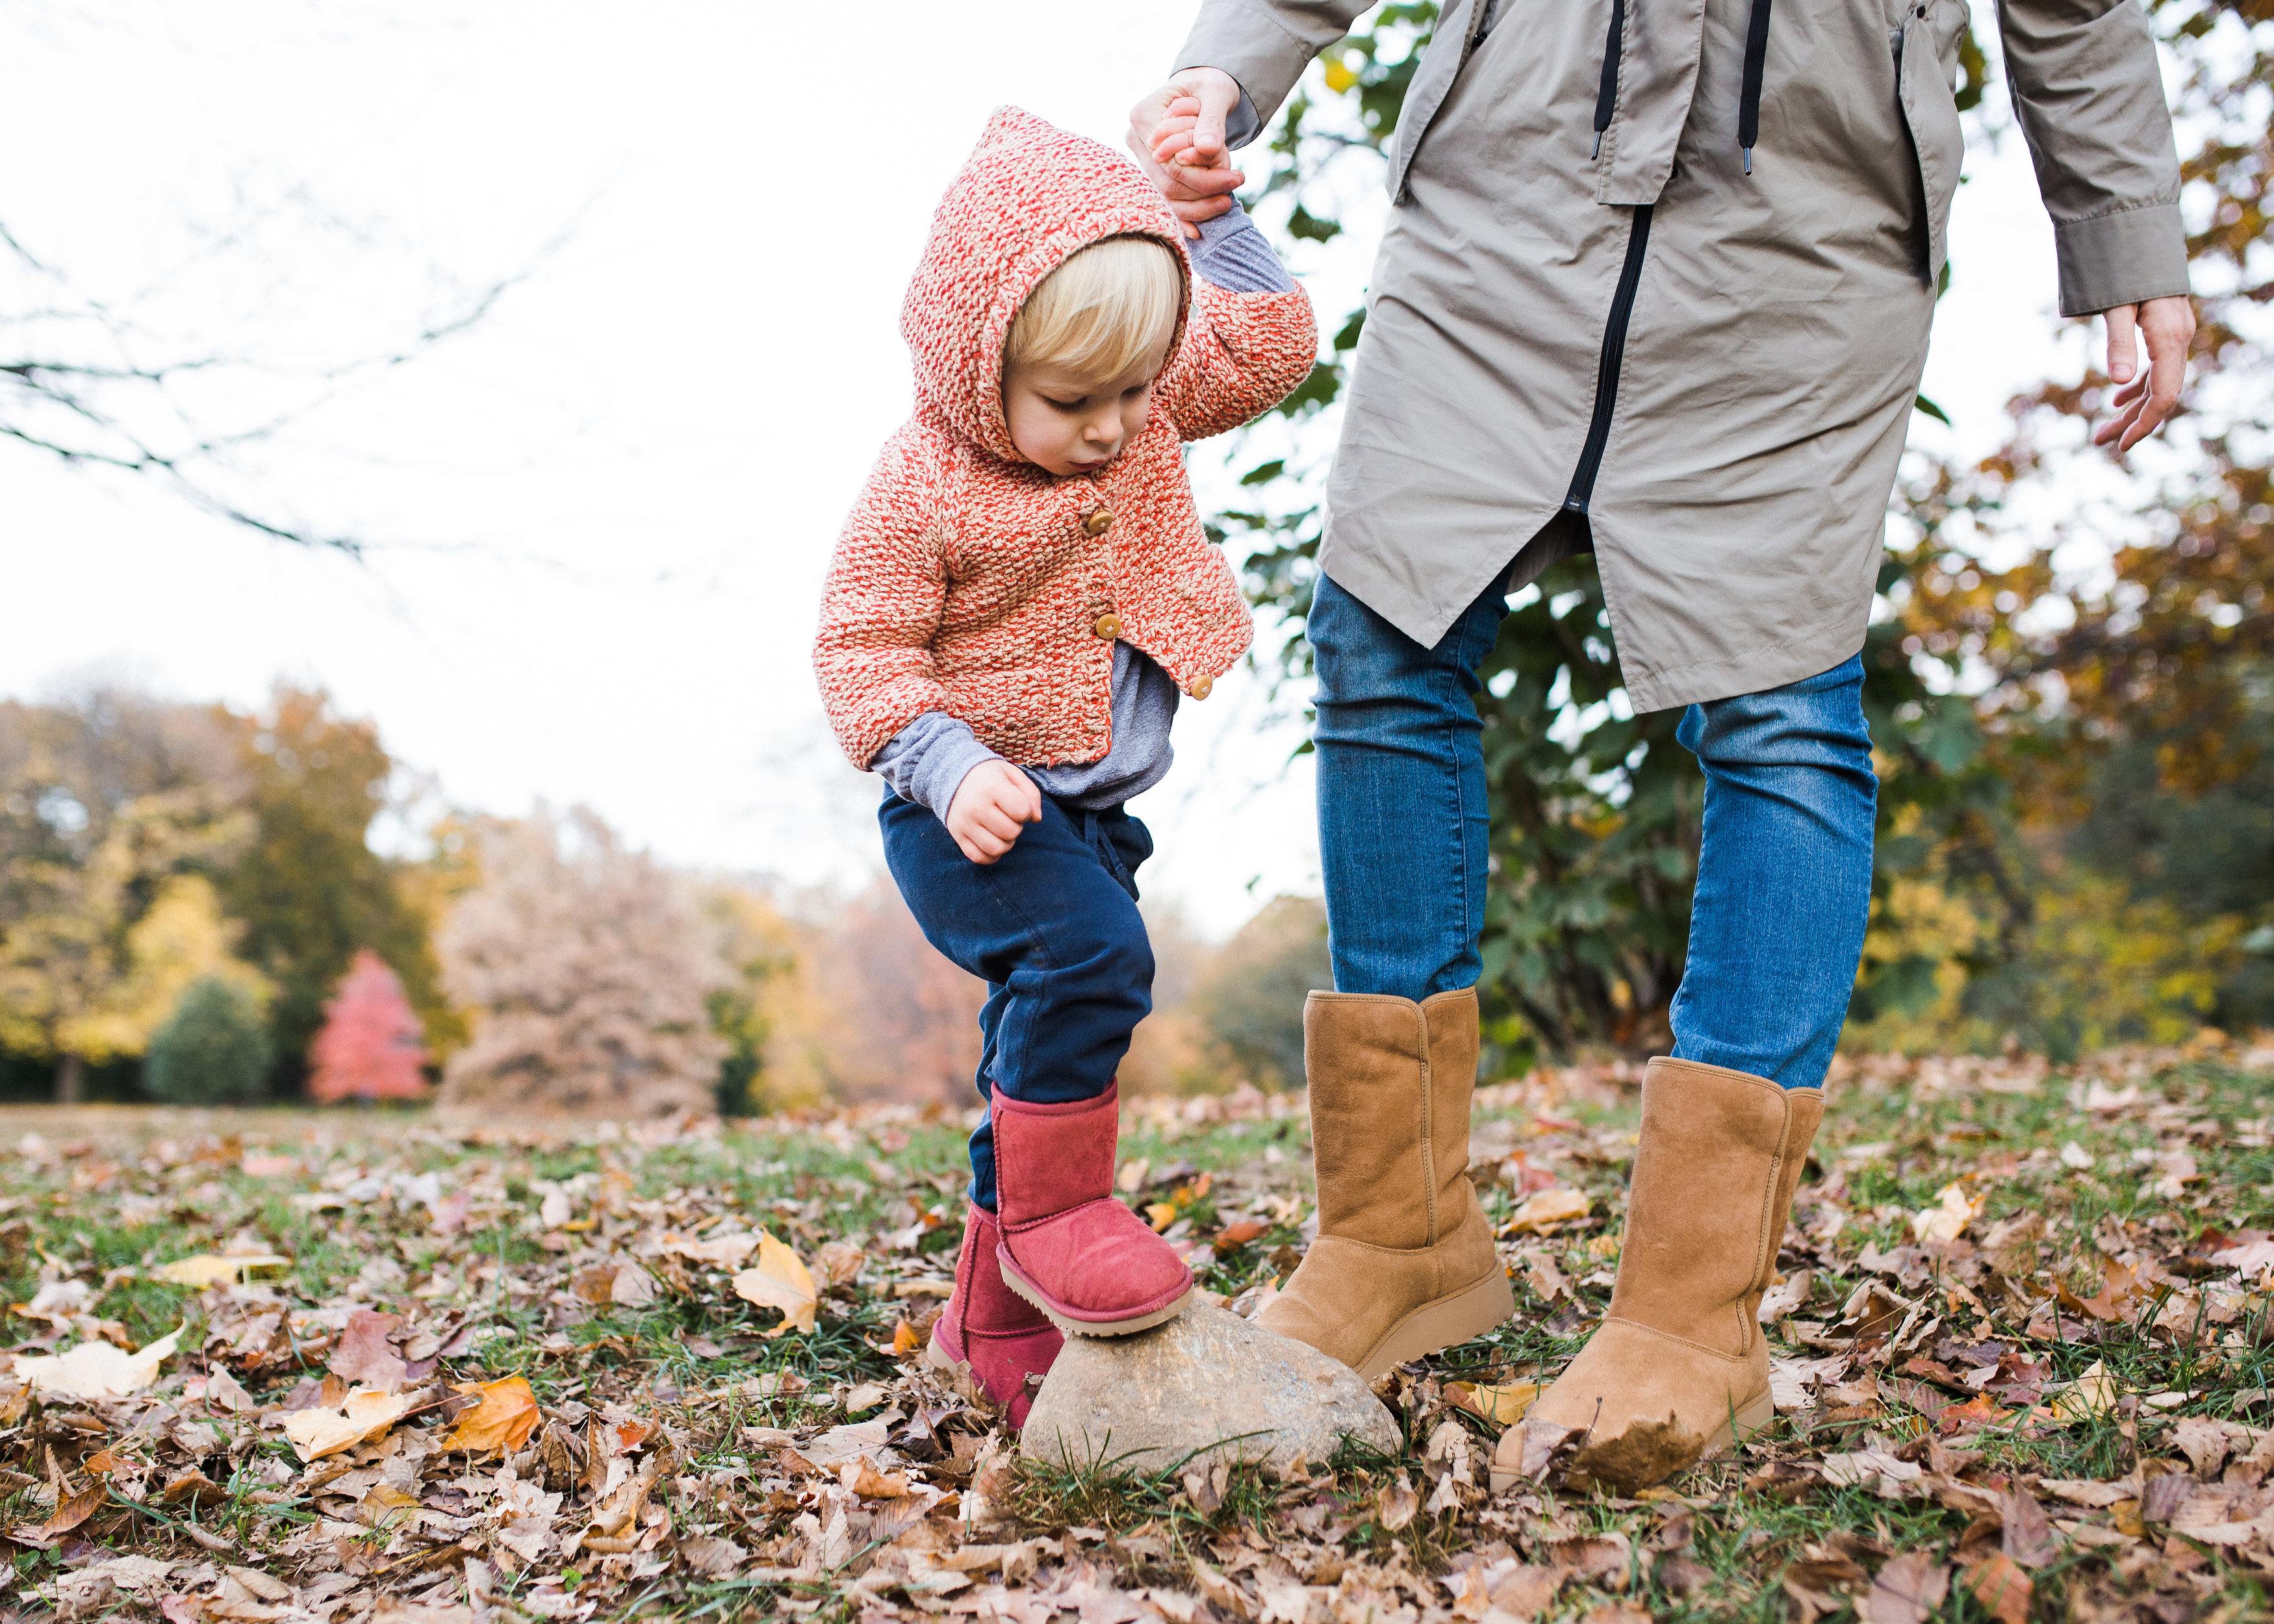 prospect-park-with-kids-uggs